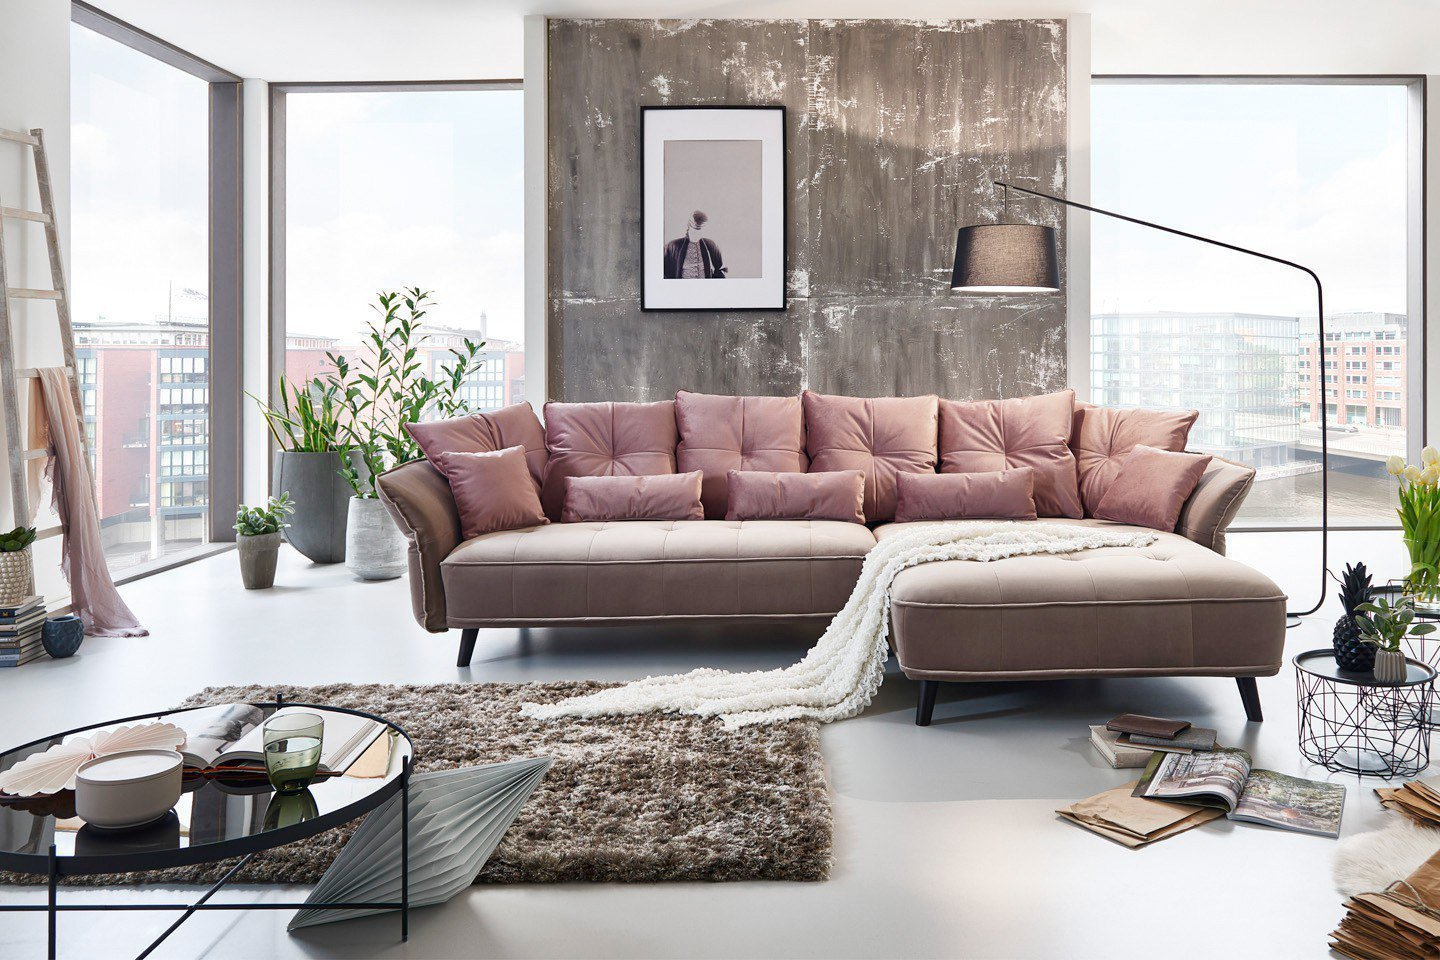 New look m bel charming ecksofa altrosa hellgrau m bel for Couch 0 finanzierung